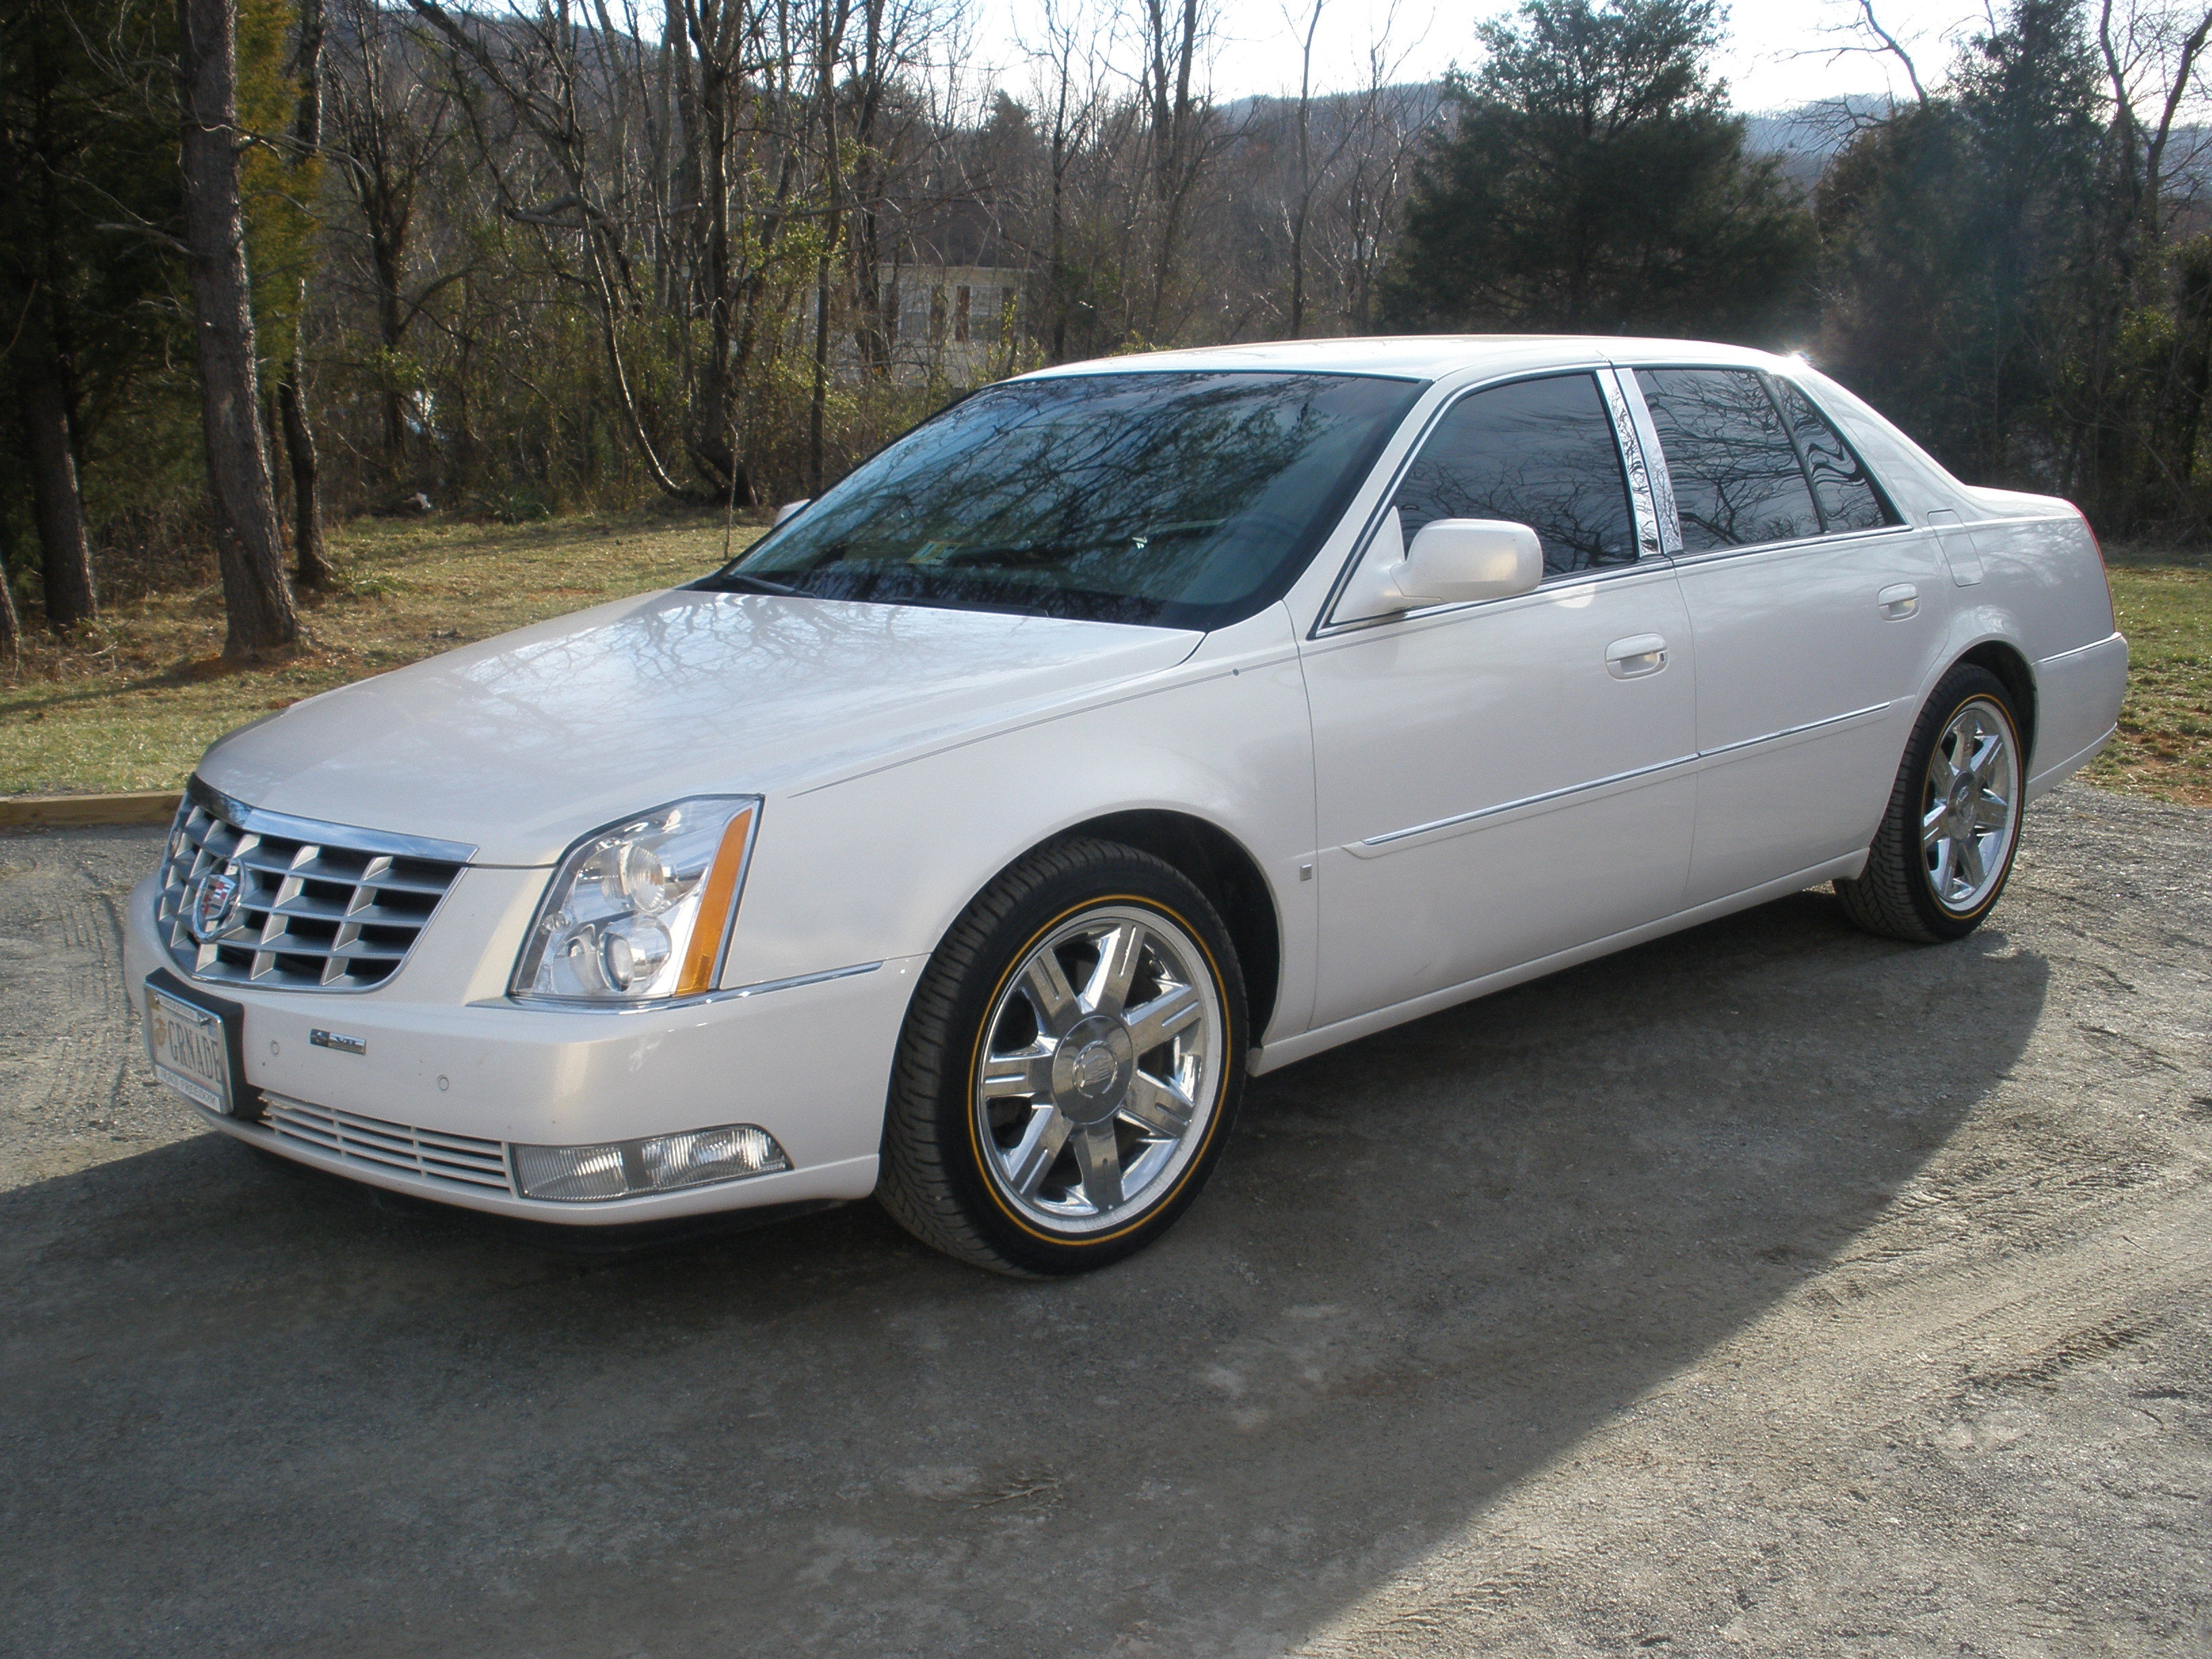 What Are Dts >> 2008 CADILLAC DTS - Image #12